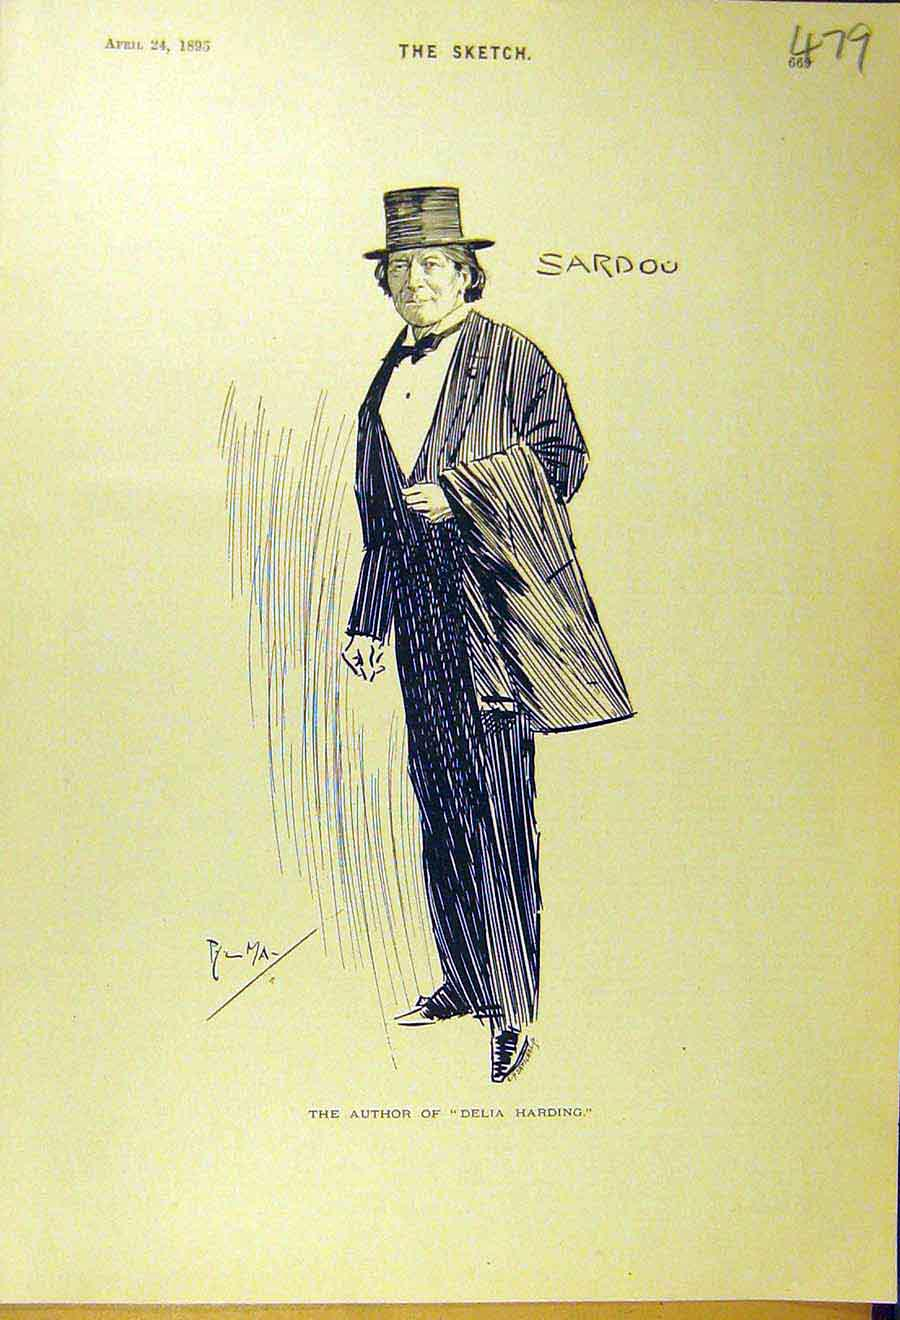 Print 1895 Author Delia-Harding Sardou Portrait Sketch 798661 Old Original